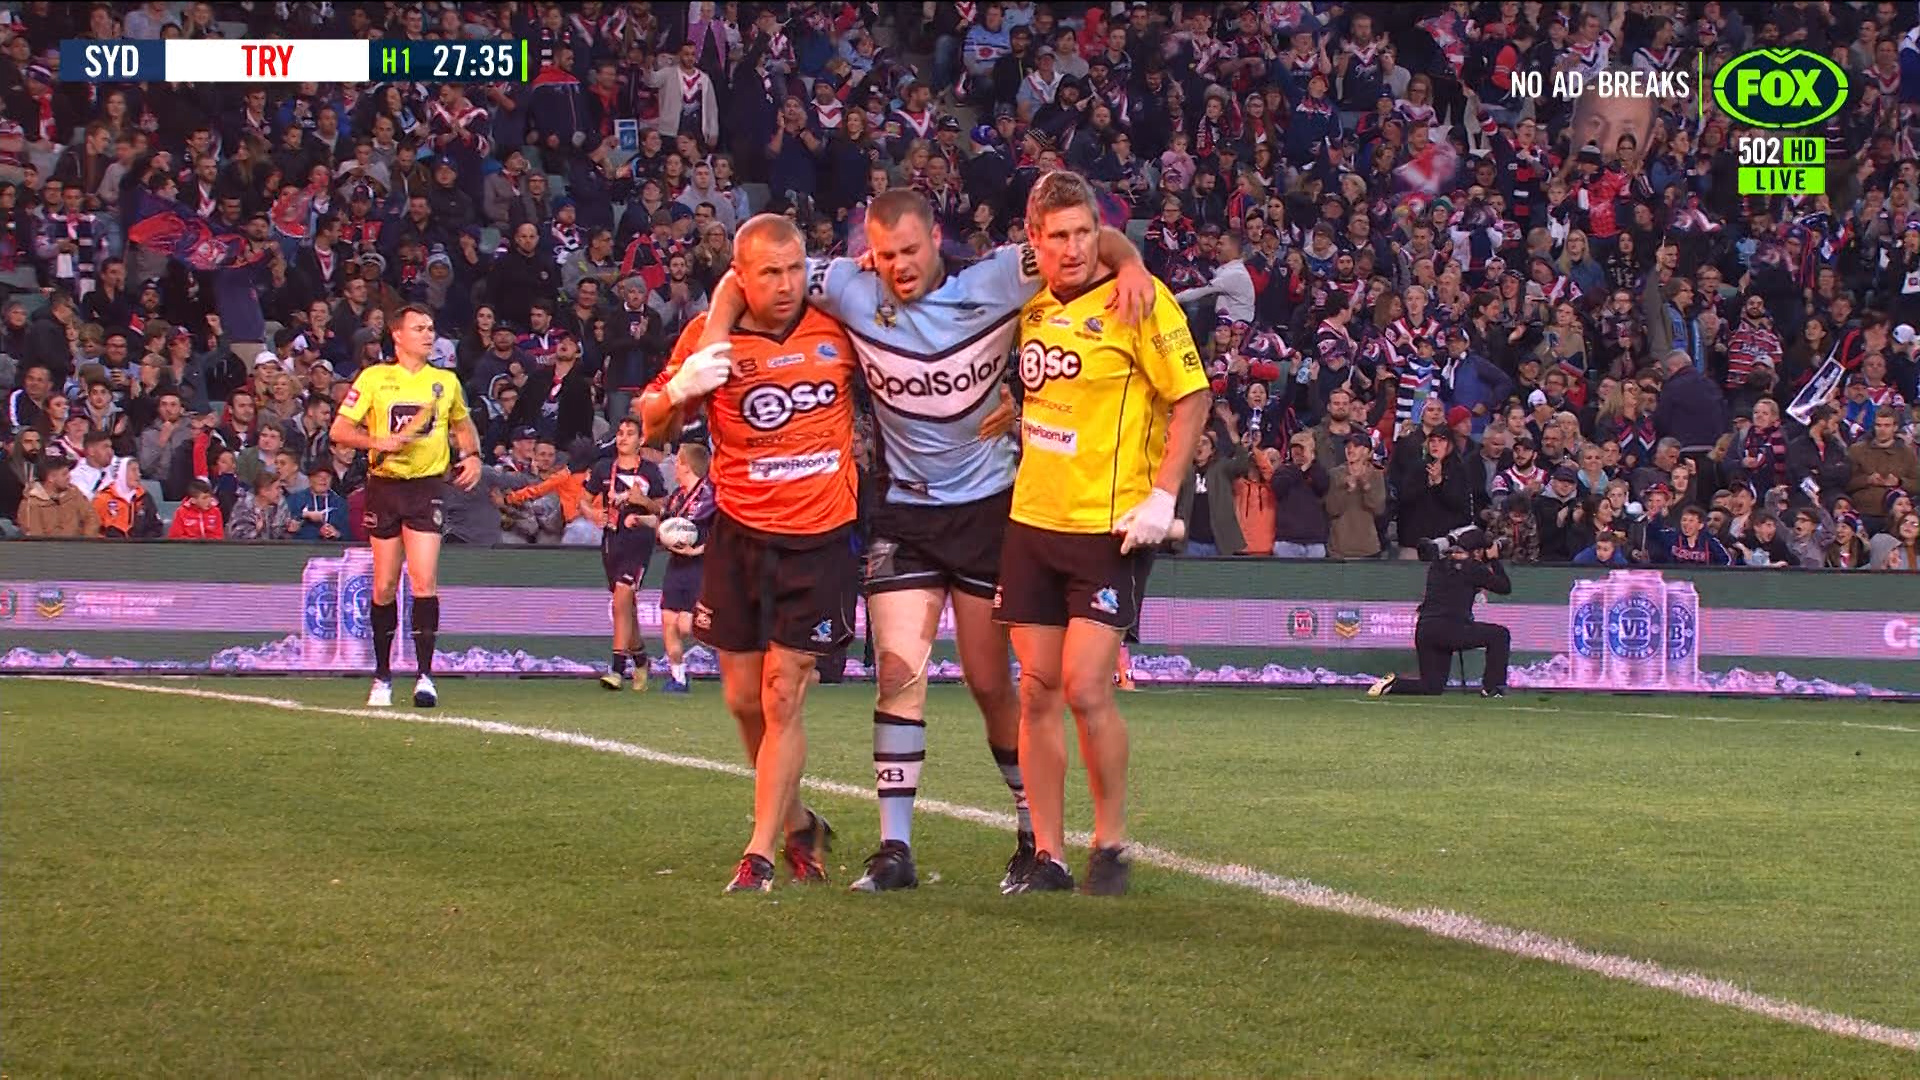 Sydney Roosters v Cronulla Sharks: Wade Graham leaves field with suspected ACL injury | Sporting ...